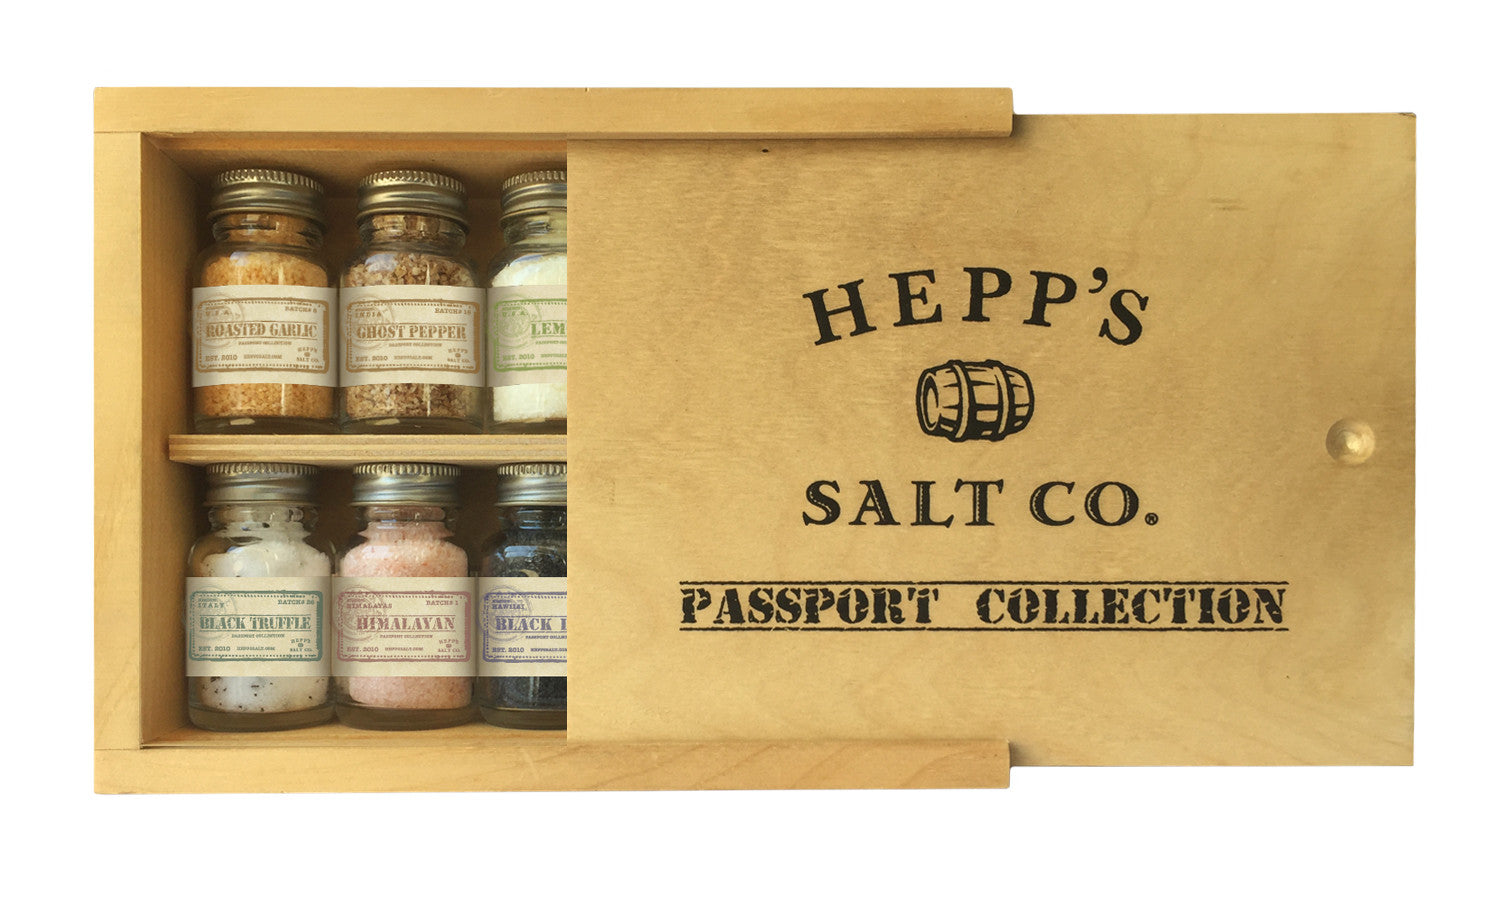 Passport Collection - HEPPS SALT CO.